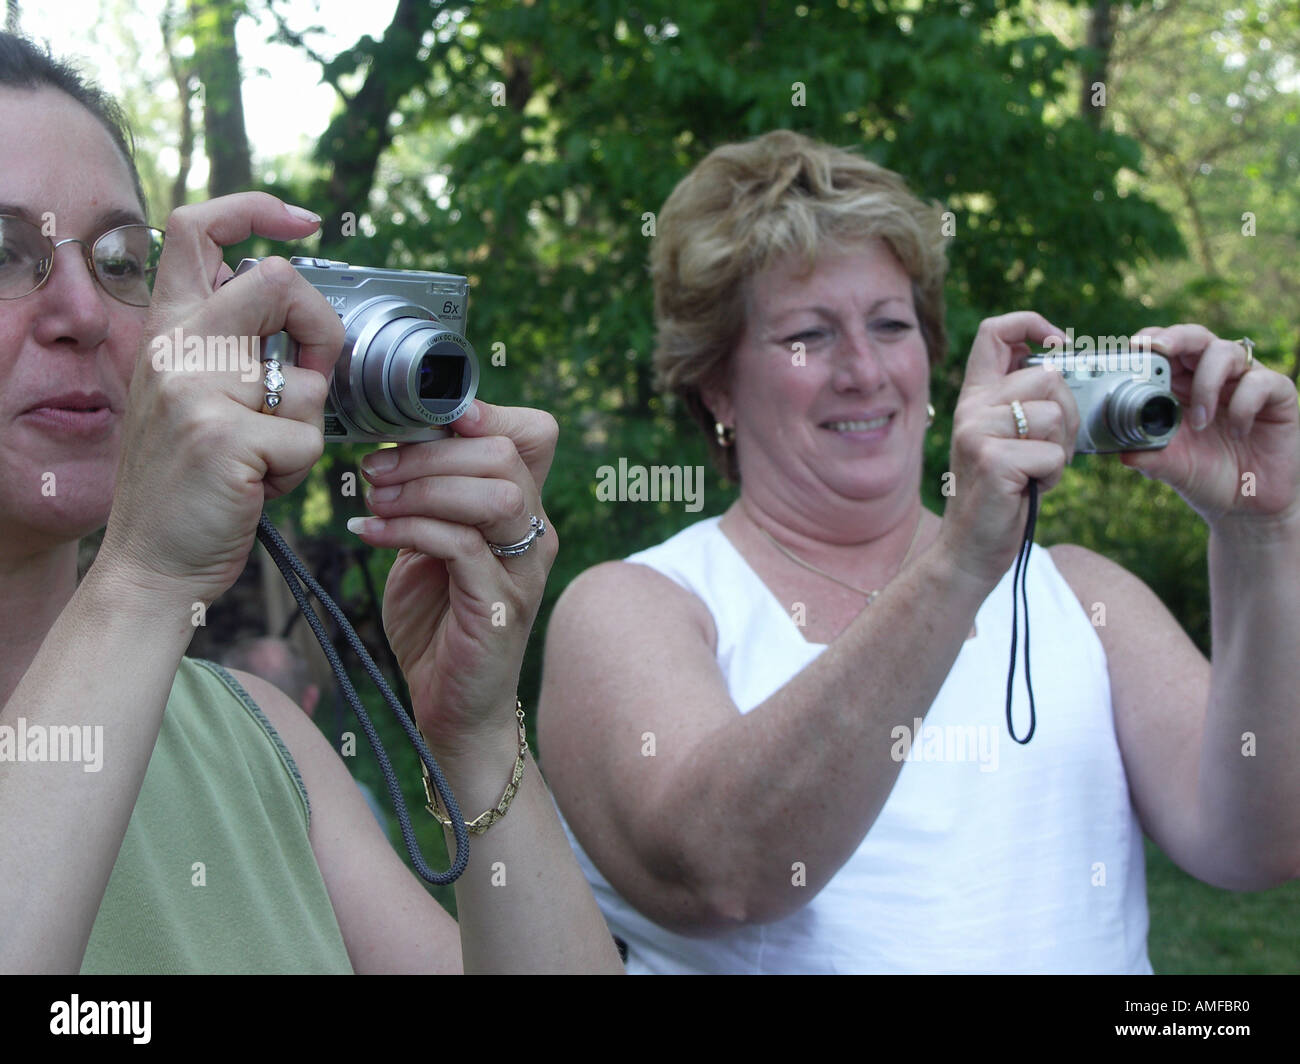 Women Taking Digital  Pictures Stock Photo